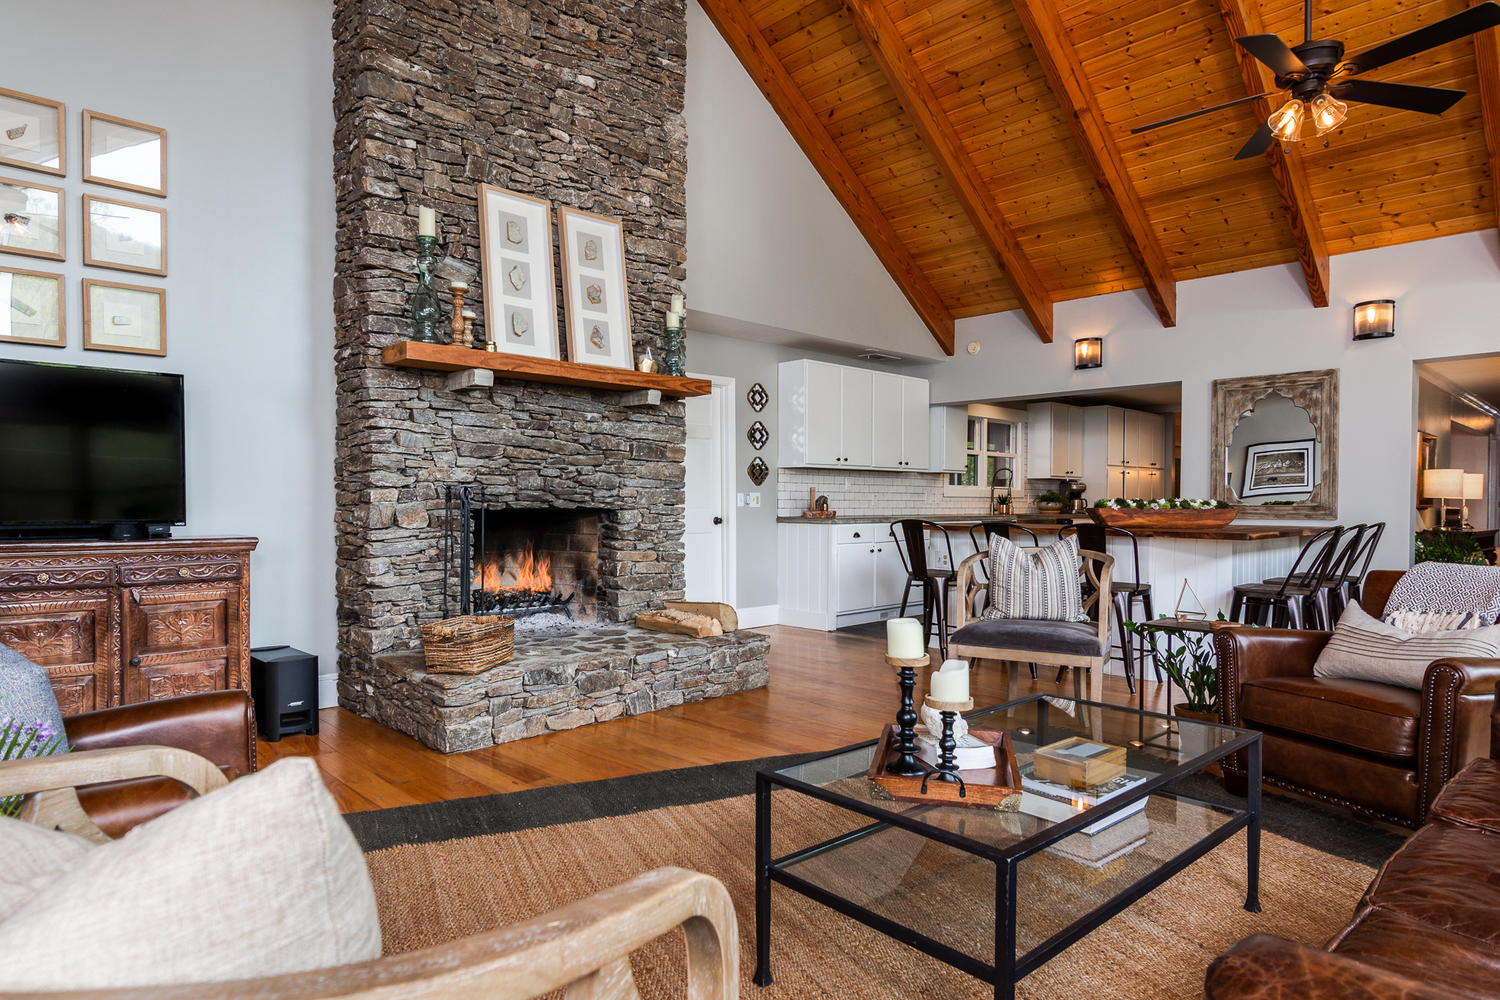 Indoor photo of the Farmhouse at Bliss Farm and Retreat